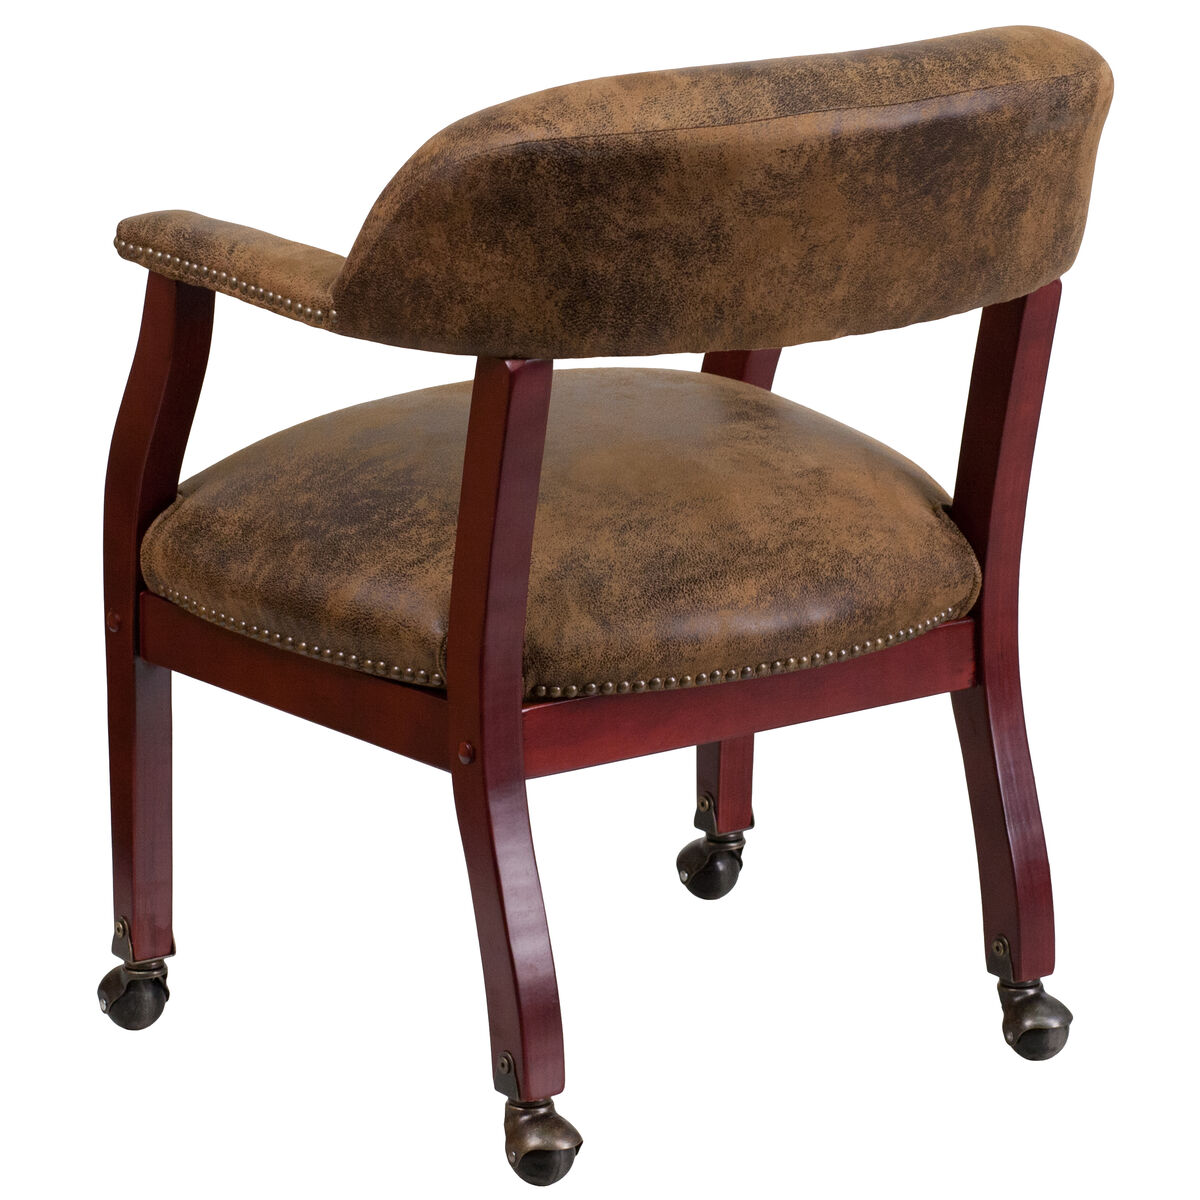 Our bomber jacket brown luxurious conference chair with accent nail trim and casters is on sale